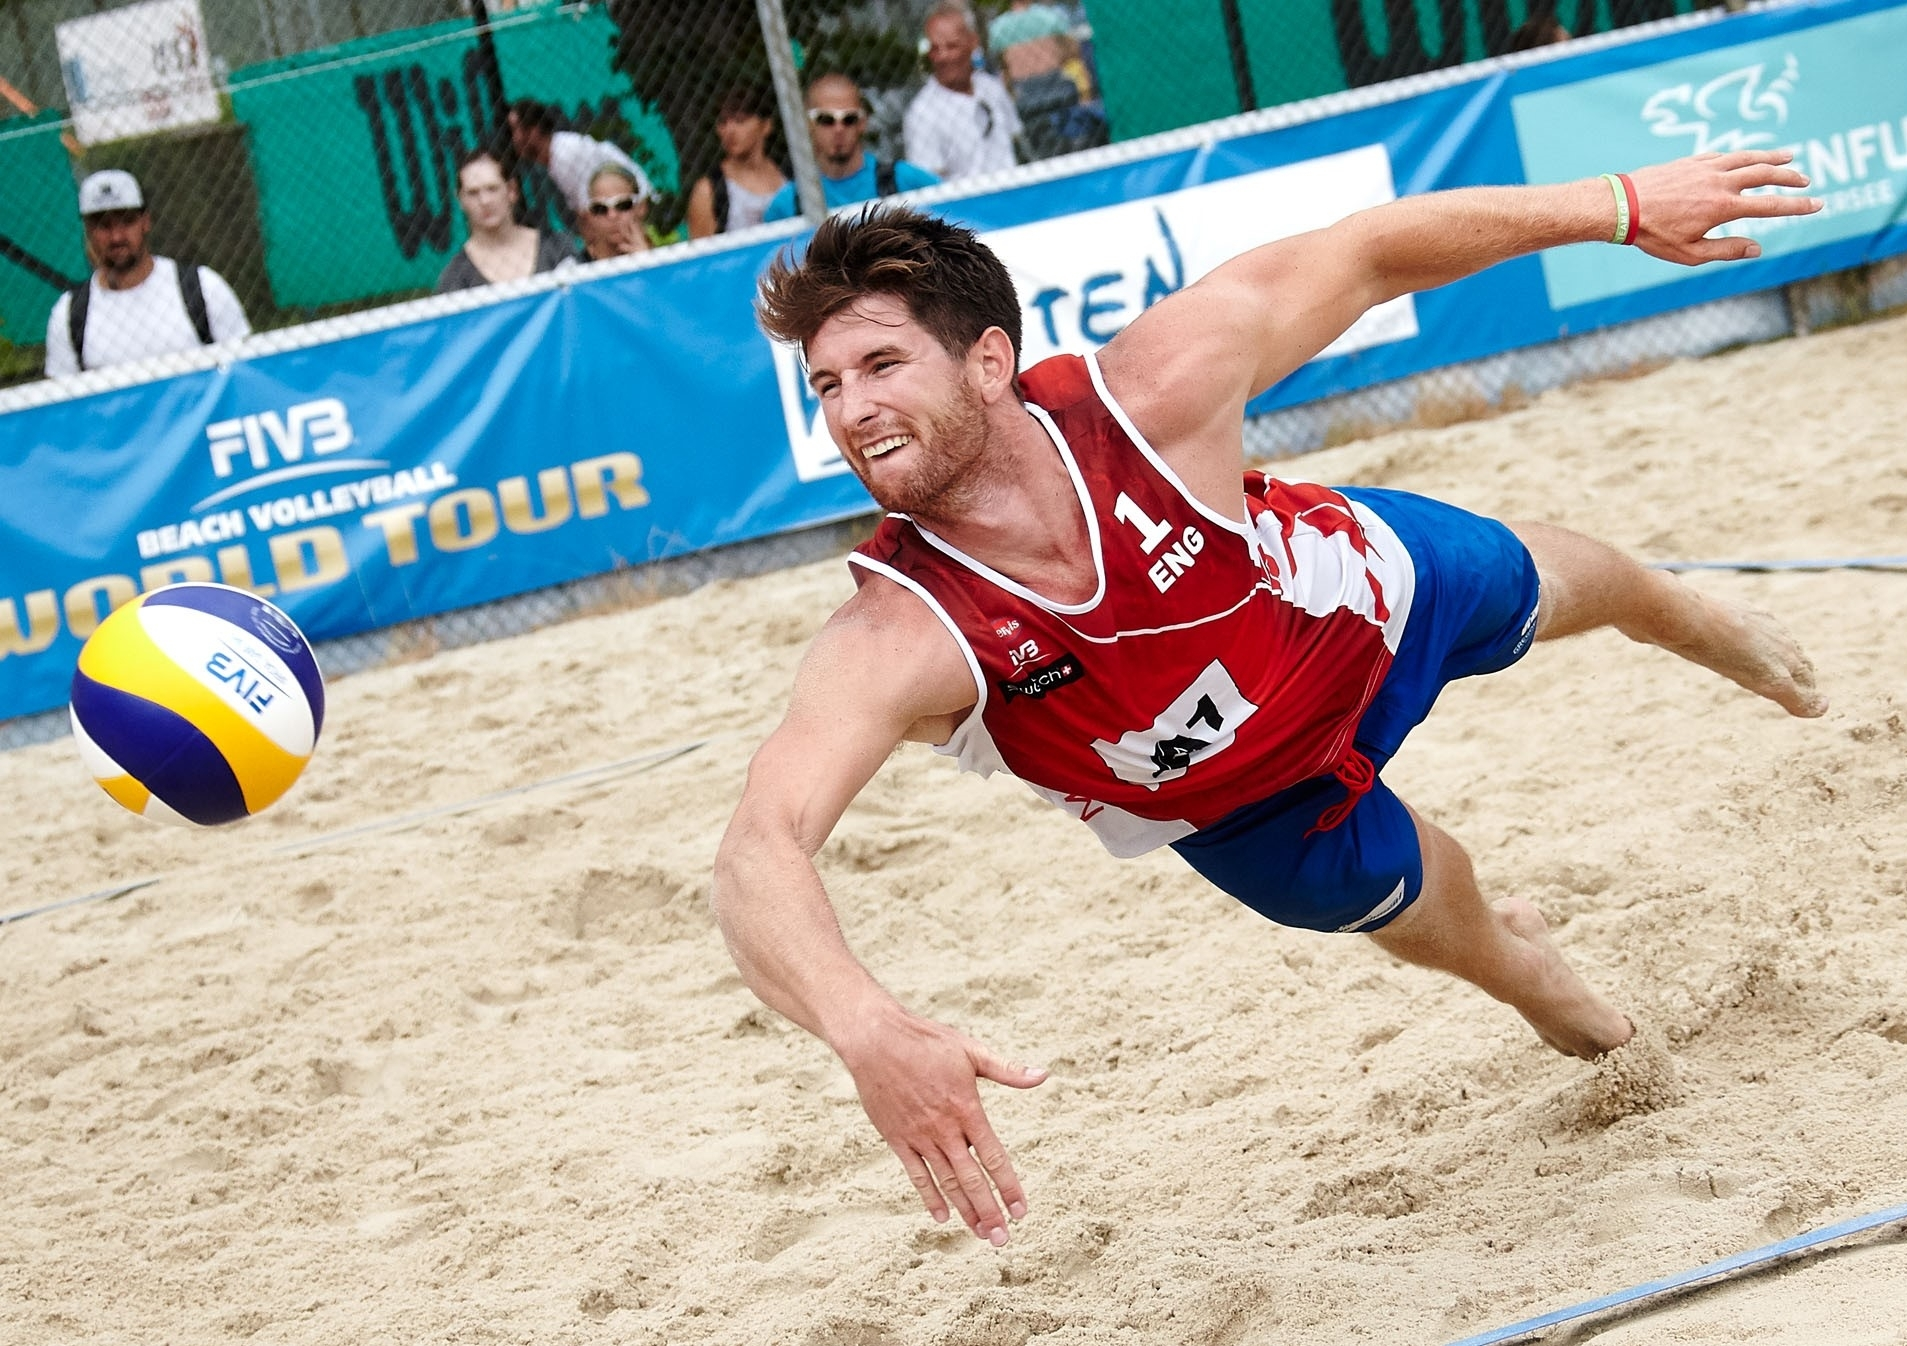 Jake Sheaf keeps the ball alive at the A1 Major Klagenfurt Major. Photocredit: Mike Ranz.